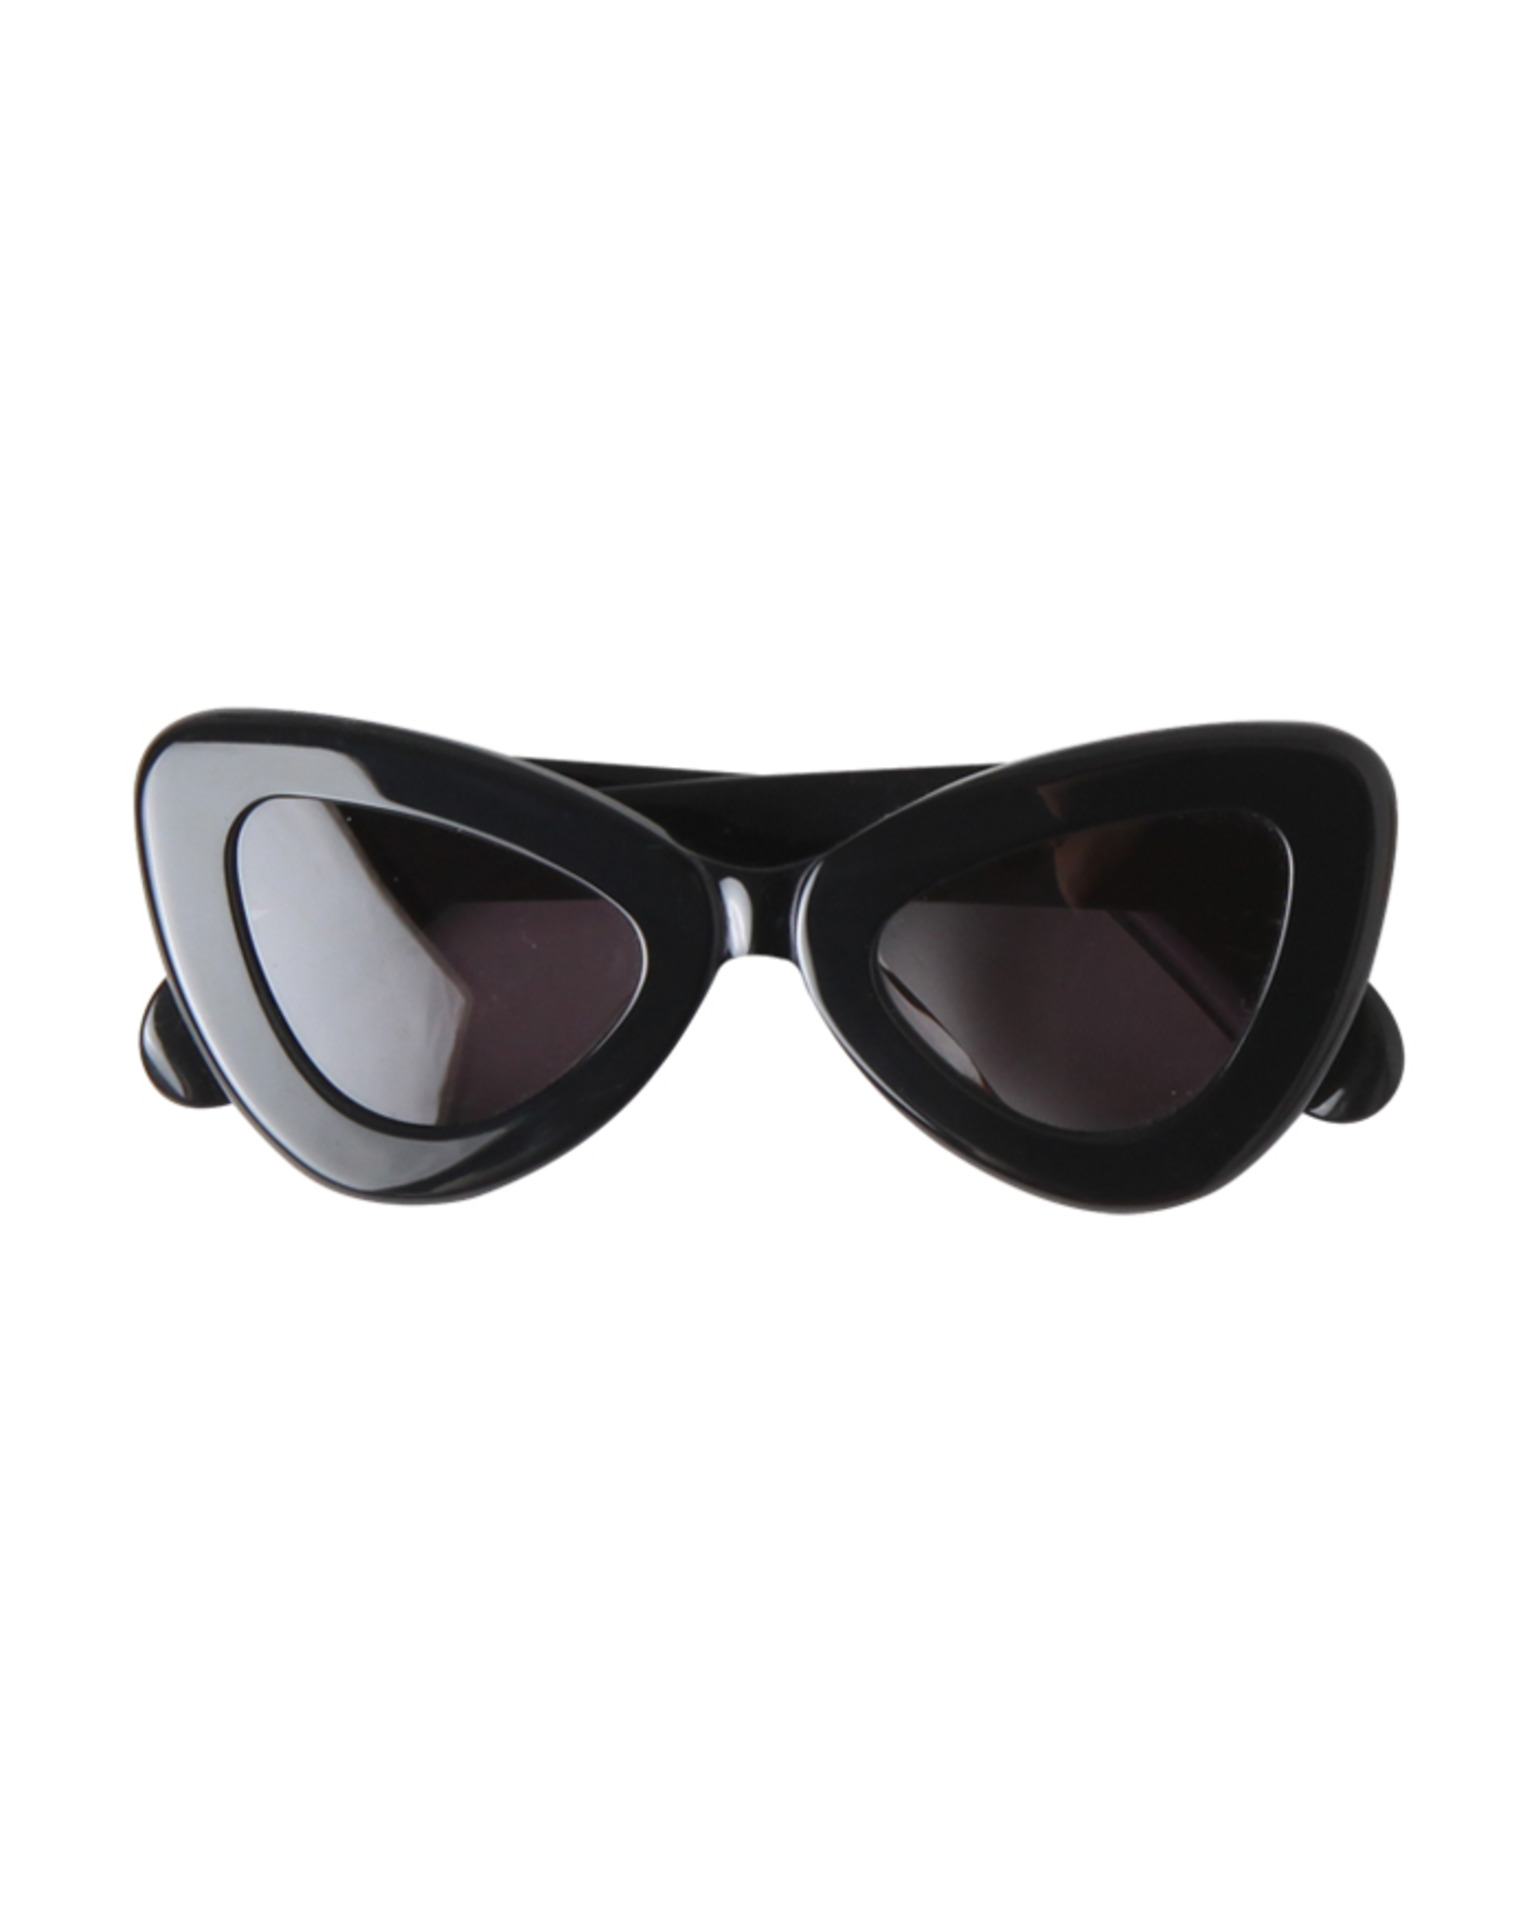 BOLD TRIANGLE FRAME SUNGLASSES